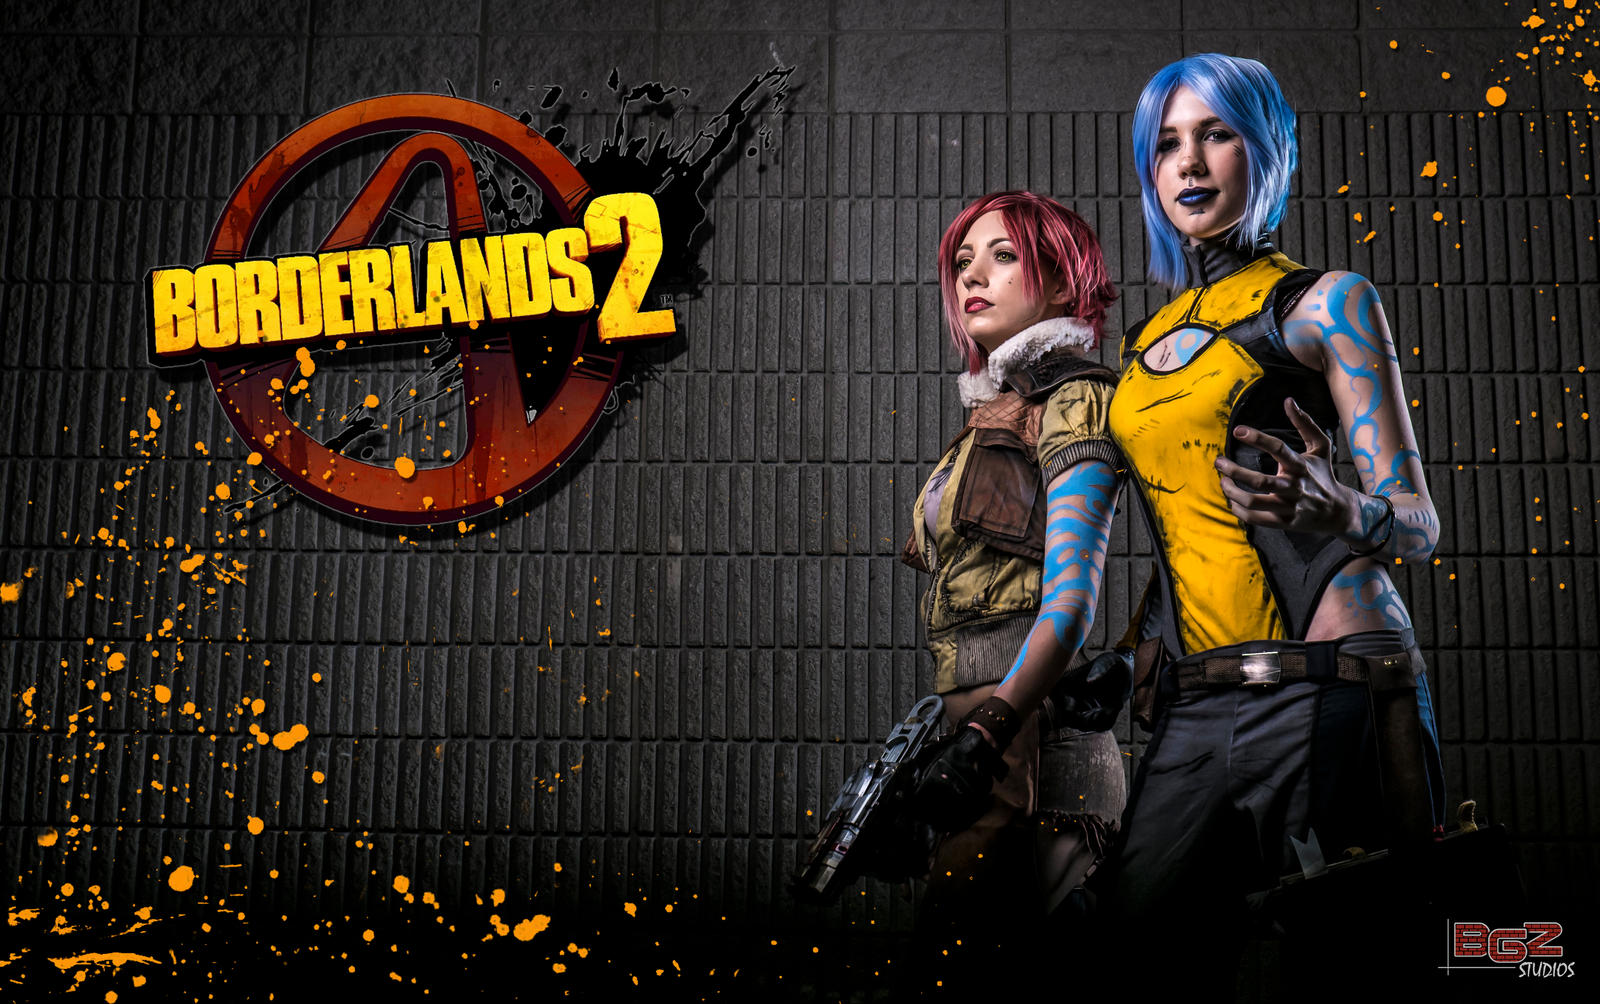 Borderlands 2 Sirens Cosplay 1 by bgzstudios